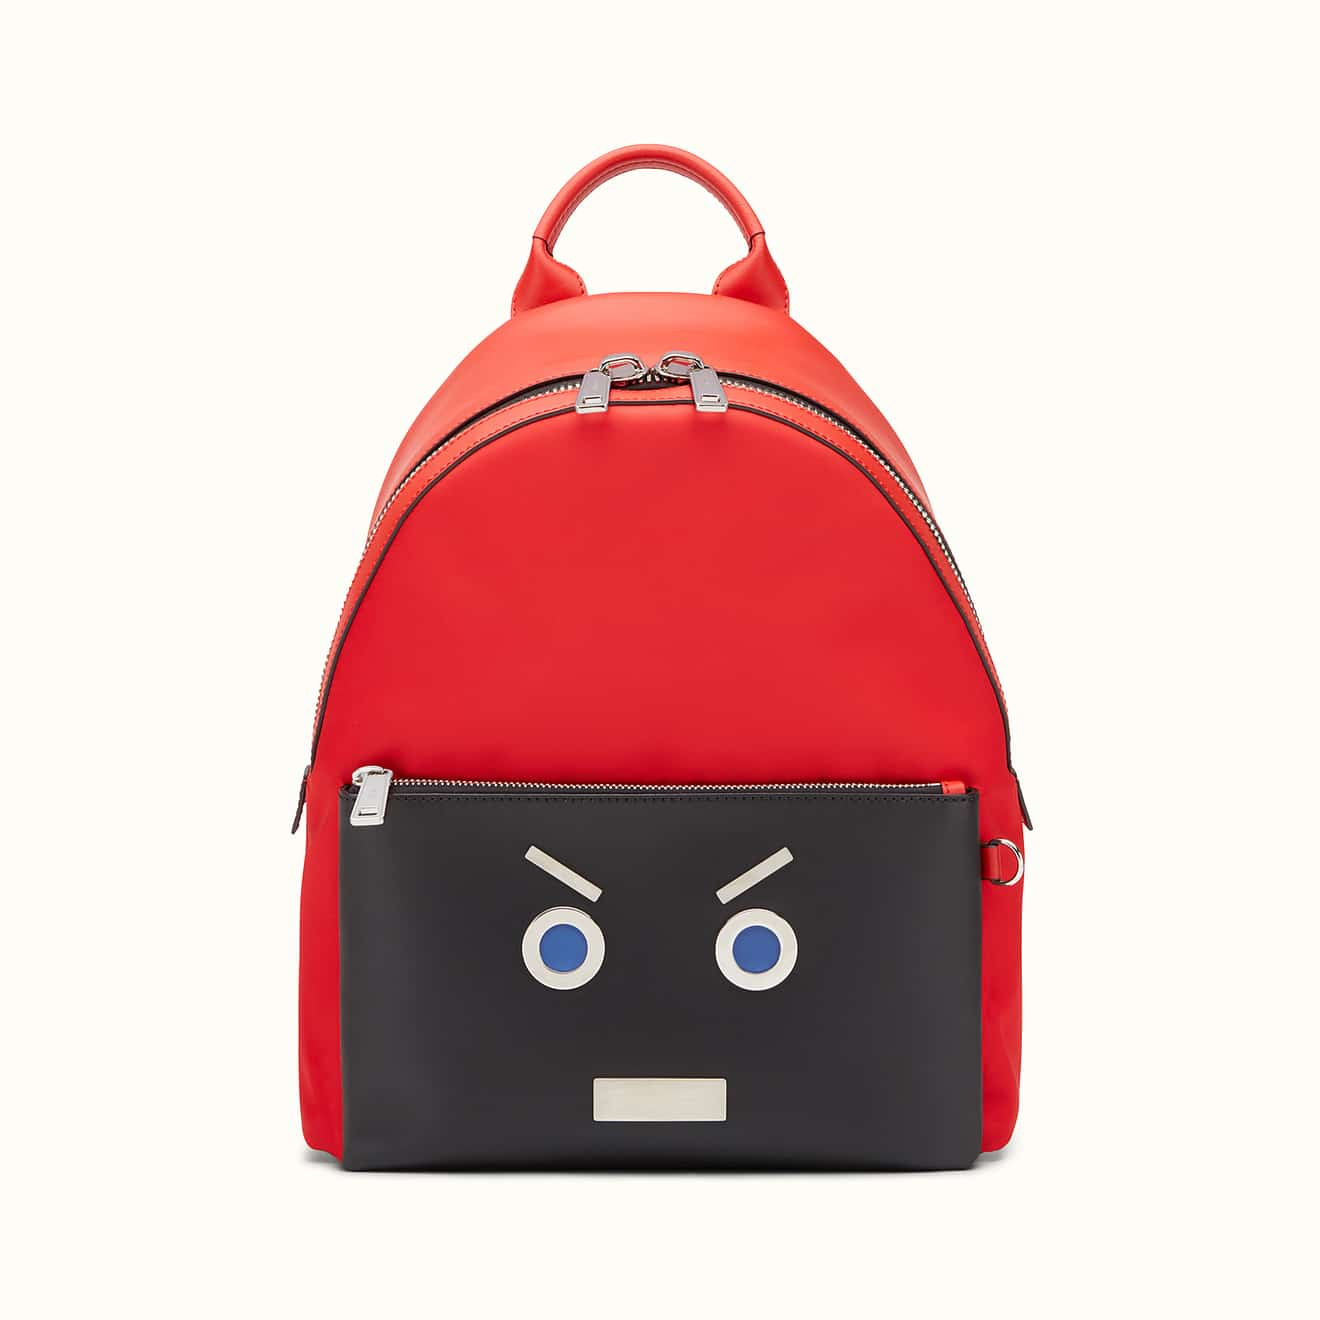 be97462693a Fendi Red/Black Nylon and Leather No Words Fendi Faces Backpack Bag